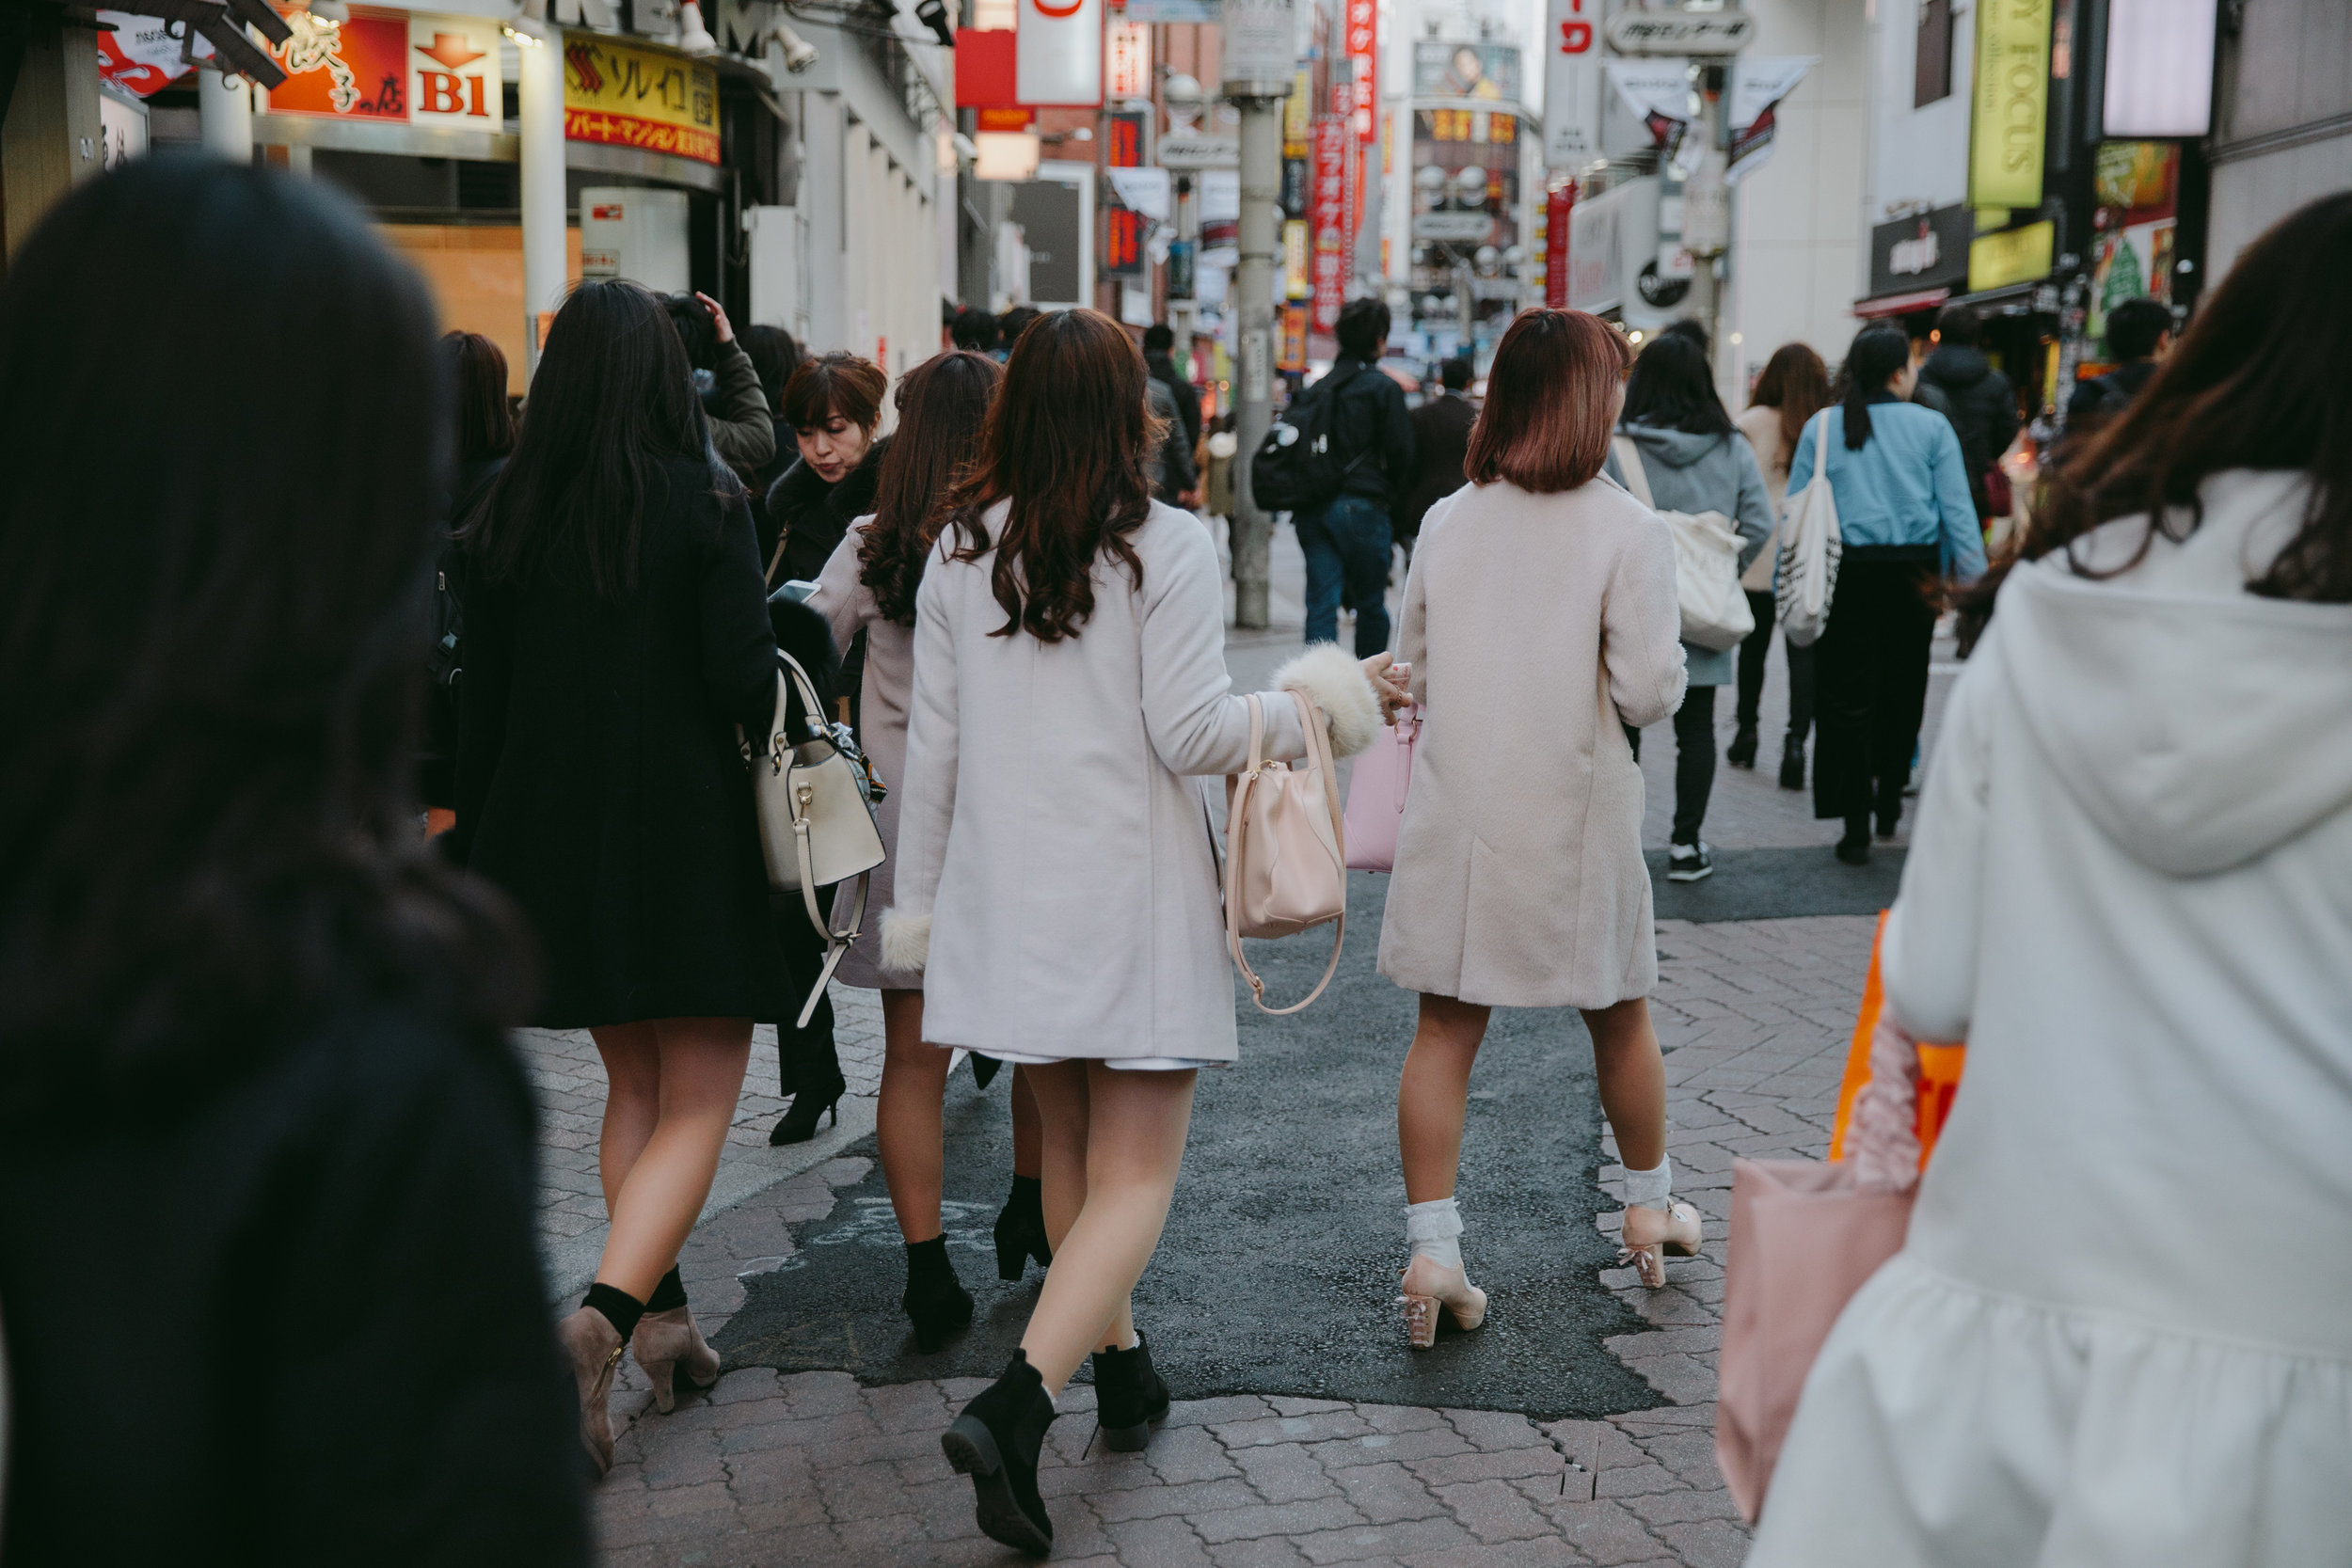 MikeSeehagel-commercial-lifestyle-travel-photography-Japan-14.jpg